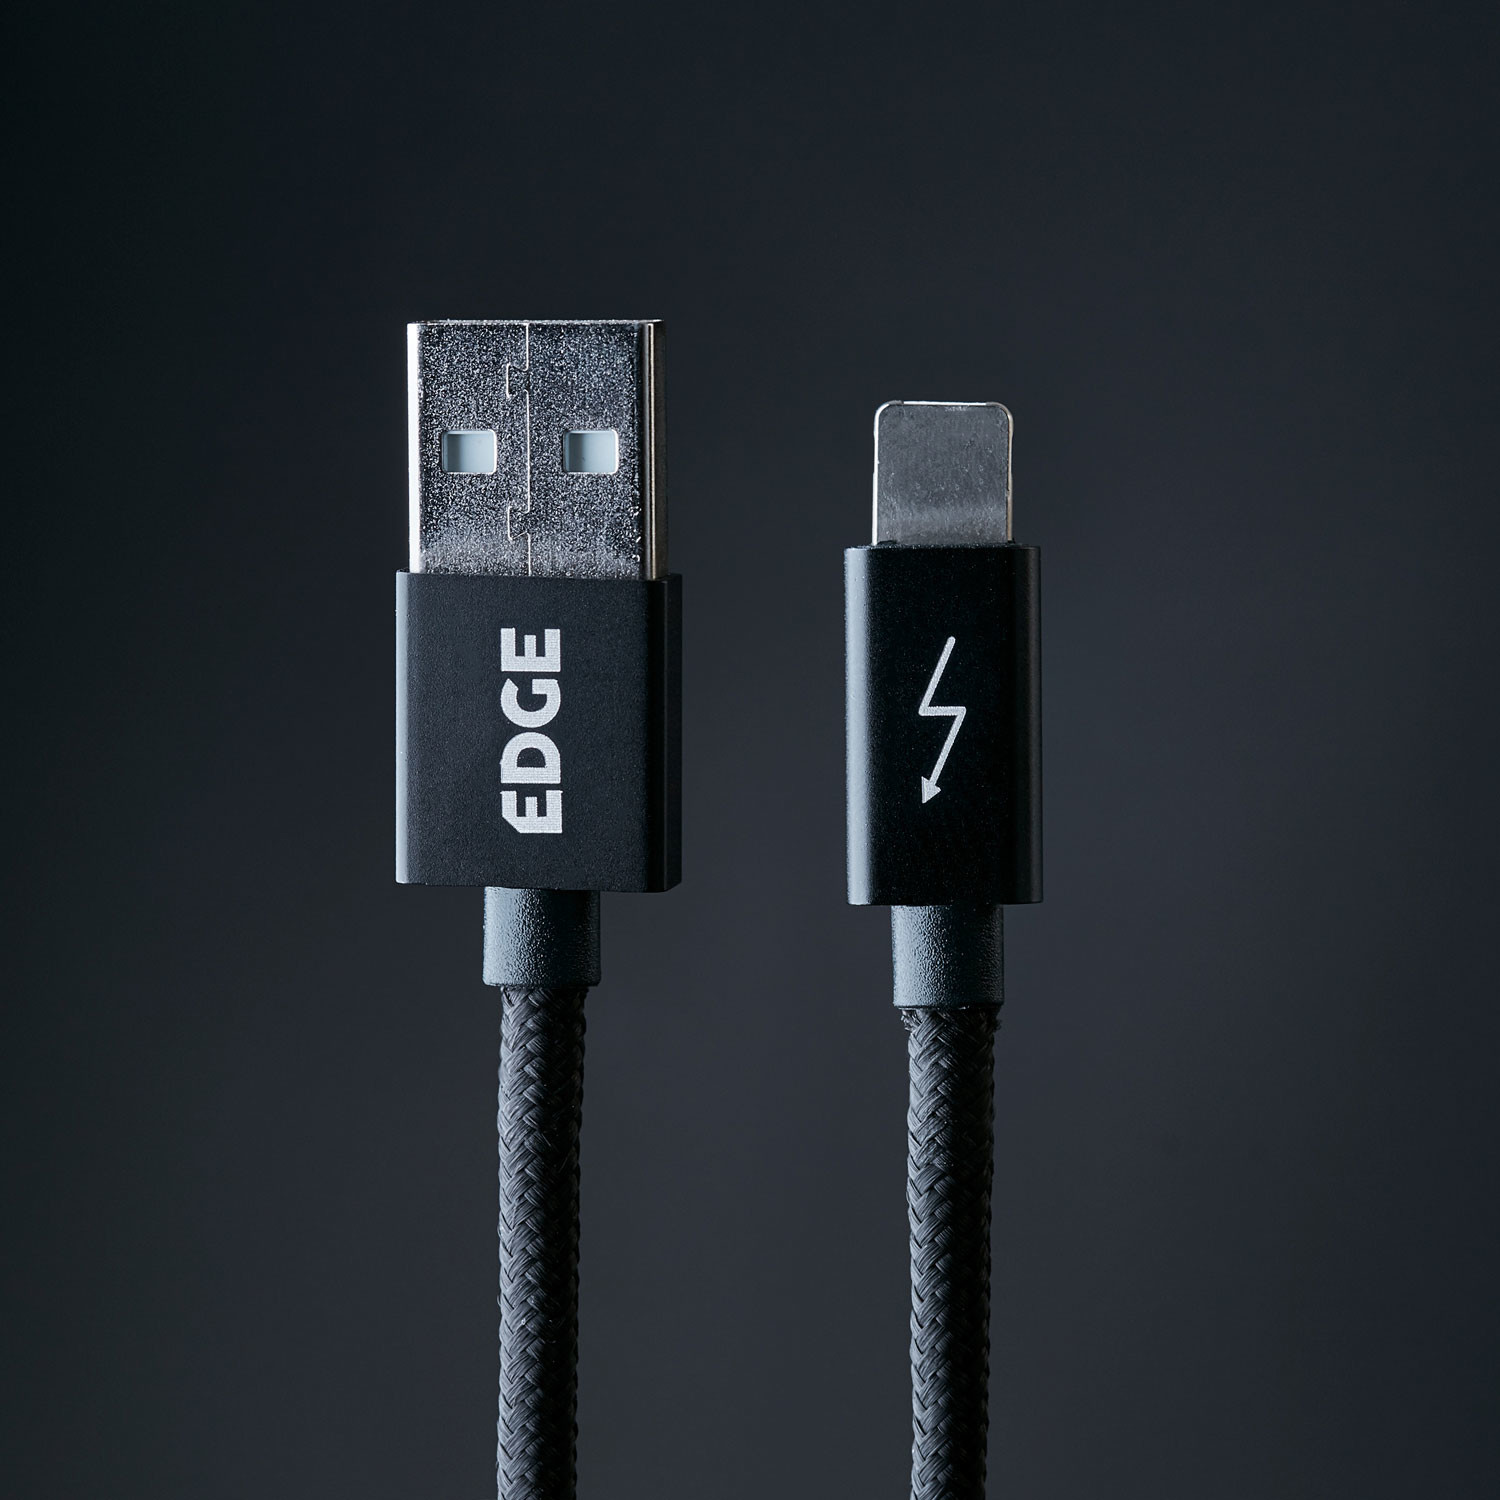 Gemini Cable Ii Lightning Micro Usb Charge Sync Cable